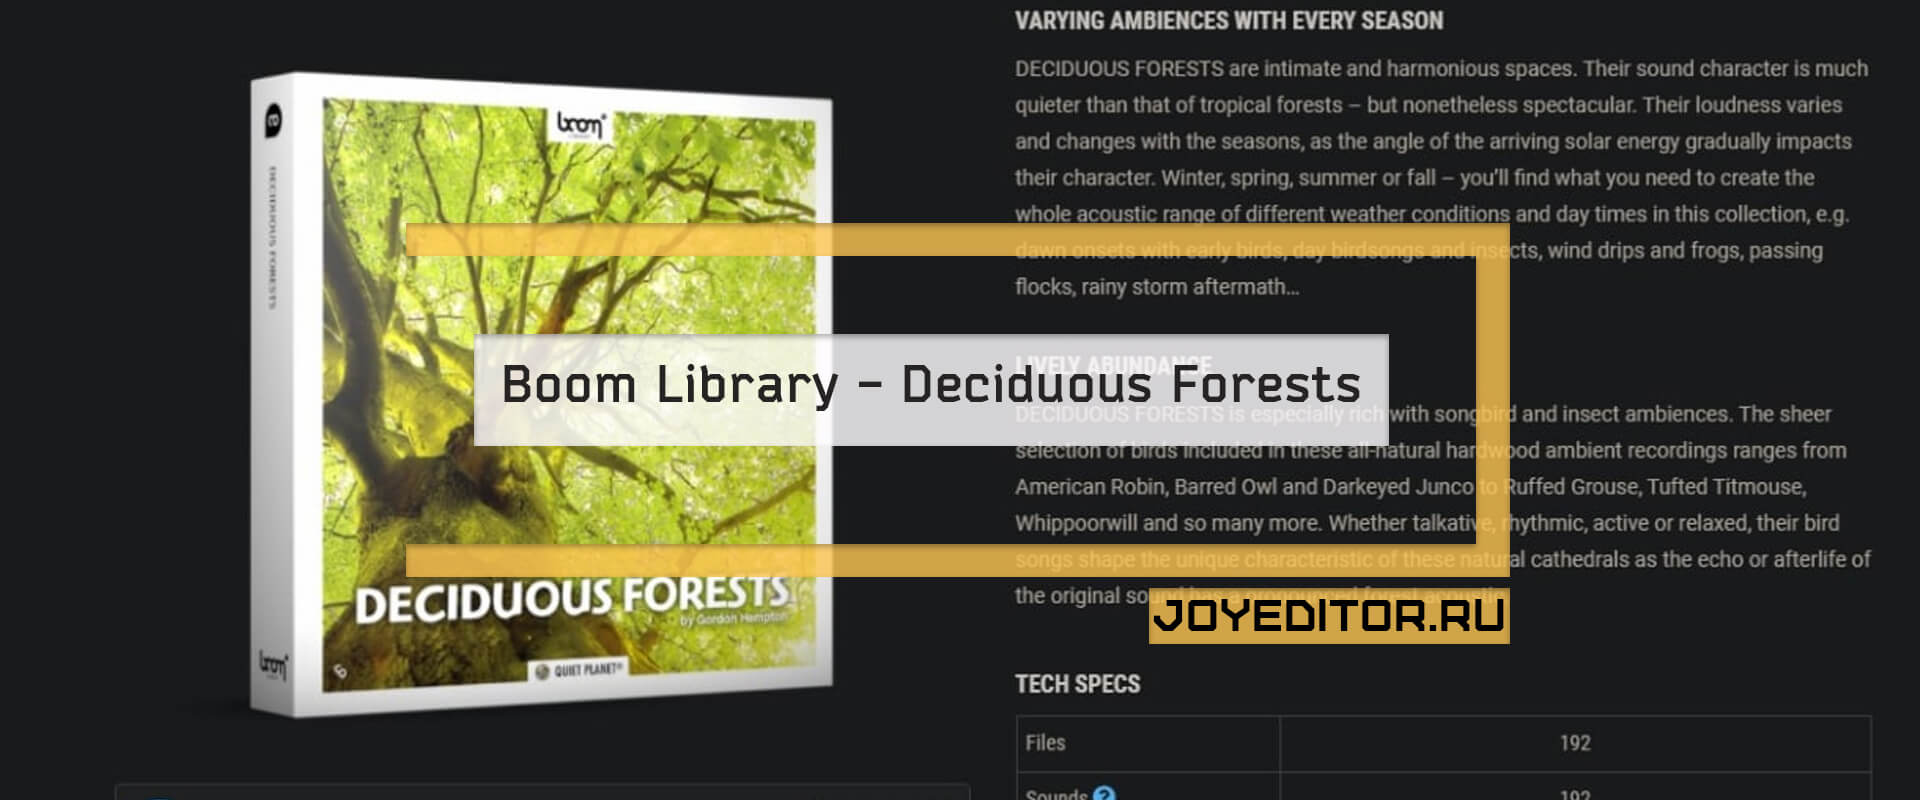 Boom Library - Deciduous Forests